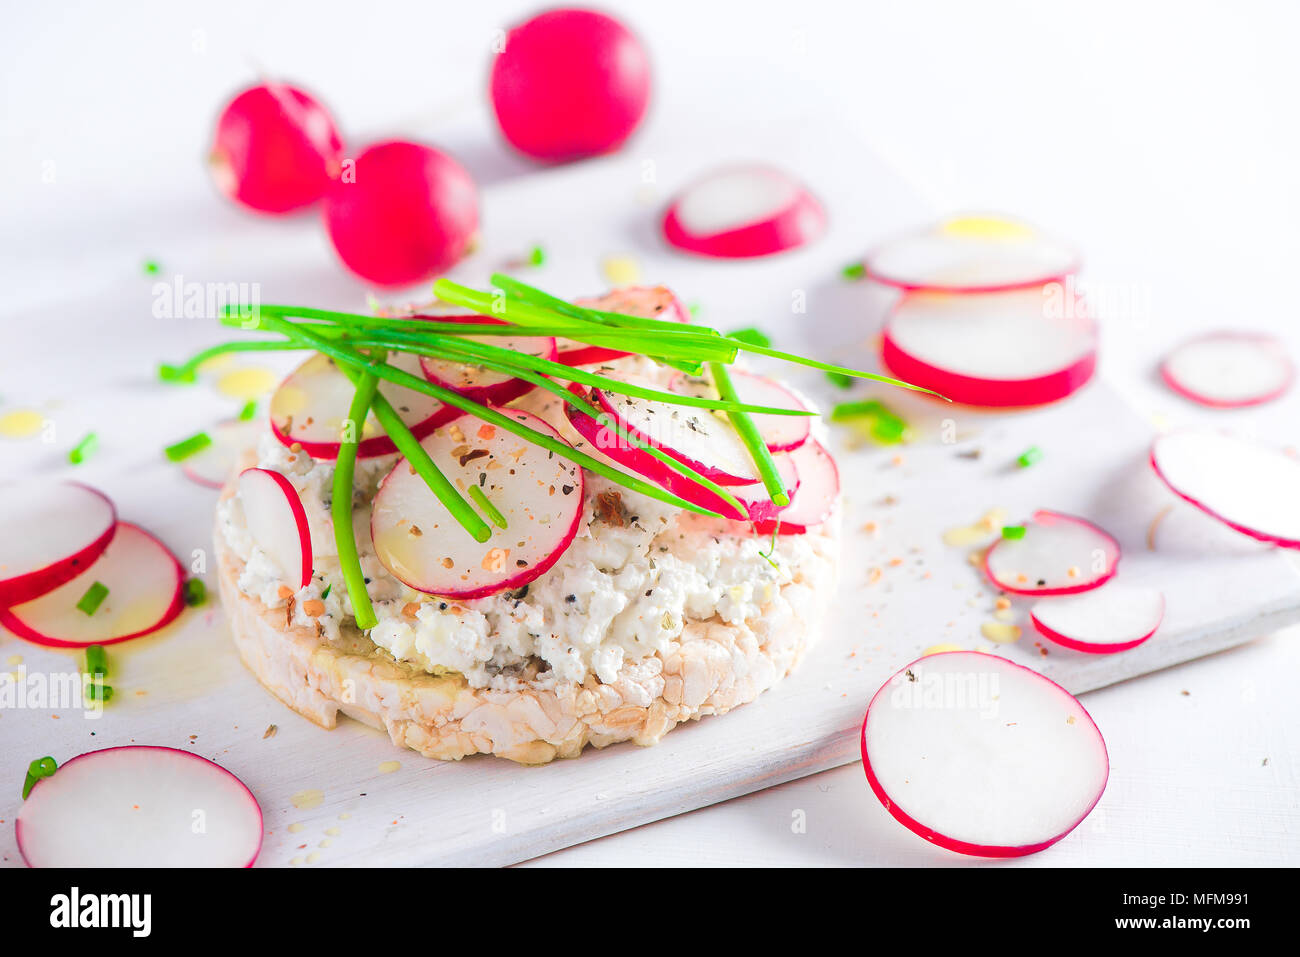 Easy breakfast concept with crisp bread, radish slices, scallion, cottage cheese and pepper. Healthy snack in high key with copy space. - Stock Image